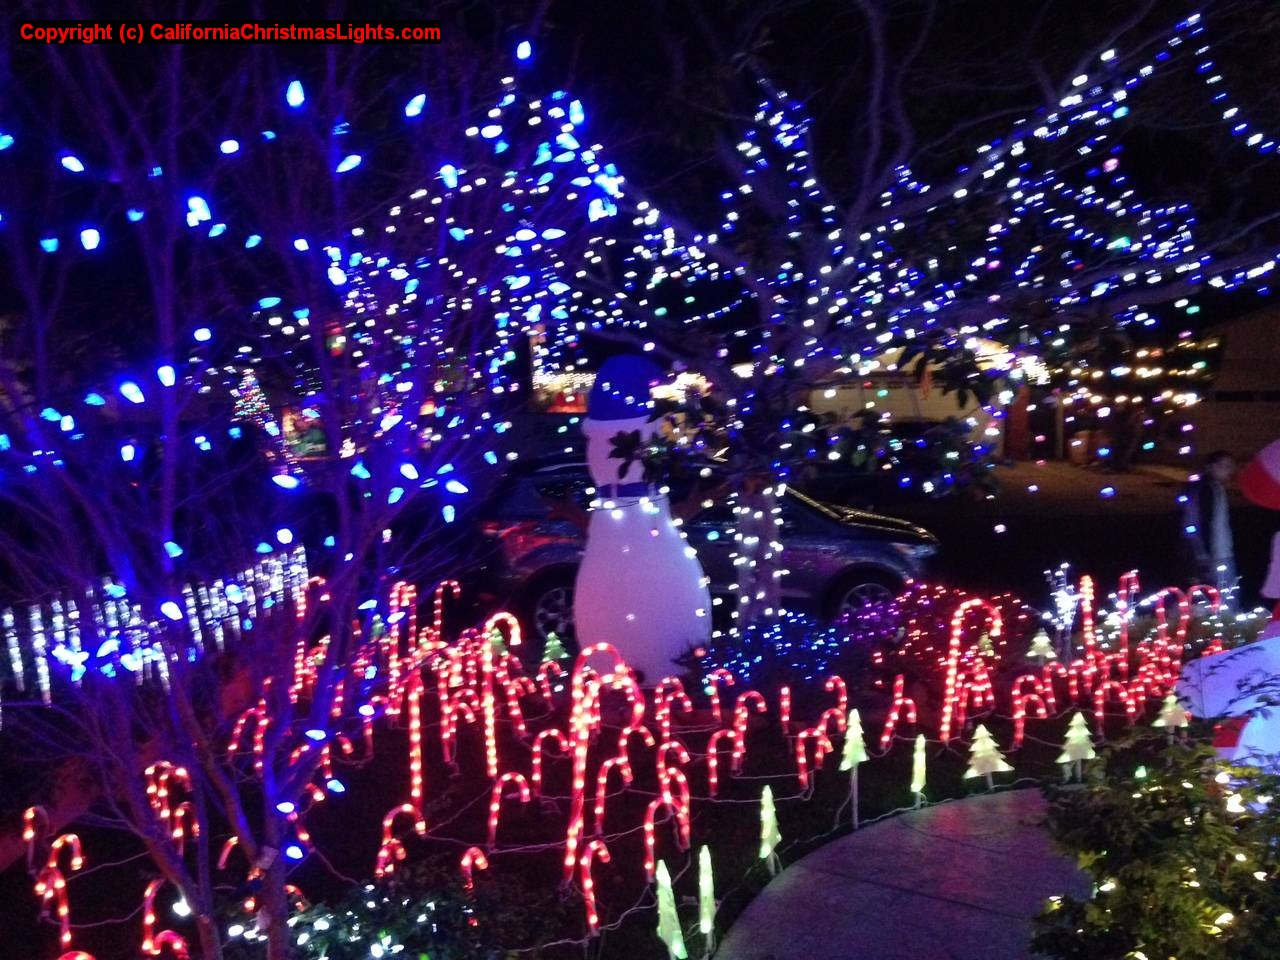 Best Christmas Lights and Holiday Displays in Union City, Alameda County